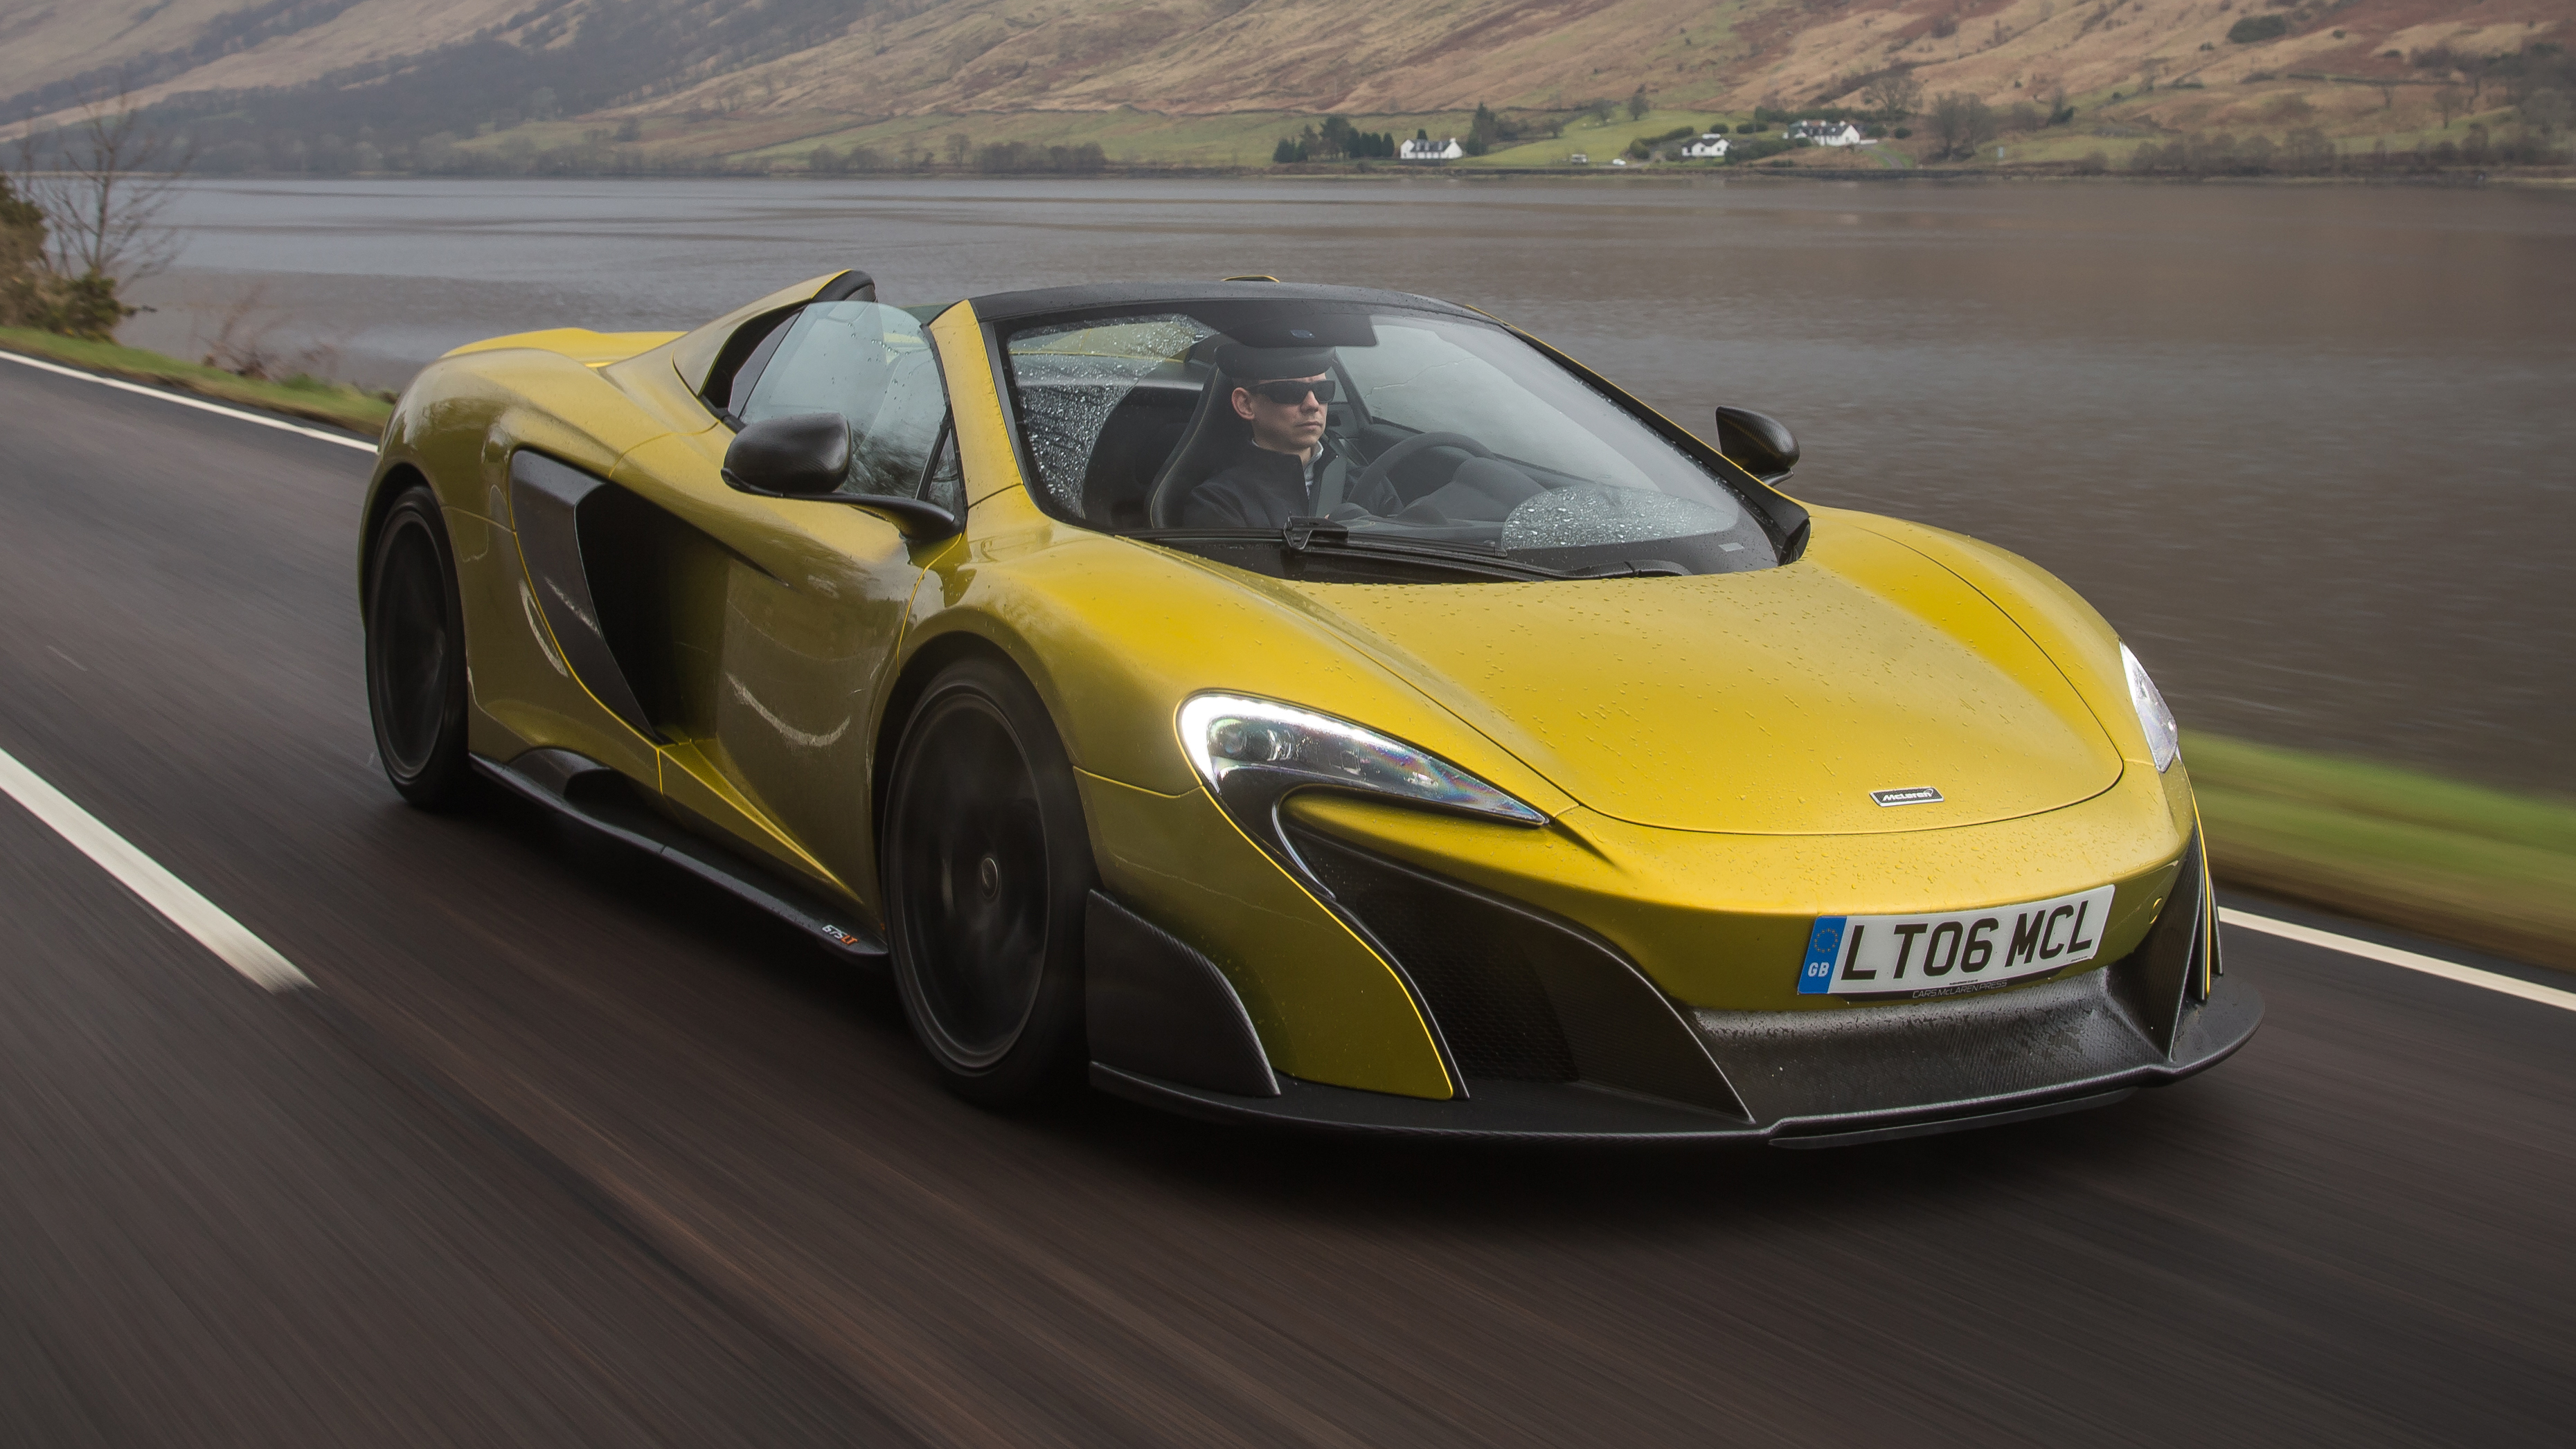 mclaren 675lt spider review better than the coupe top gear. Black Bedroom Furniture Sets. Home Design Ideas